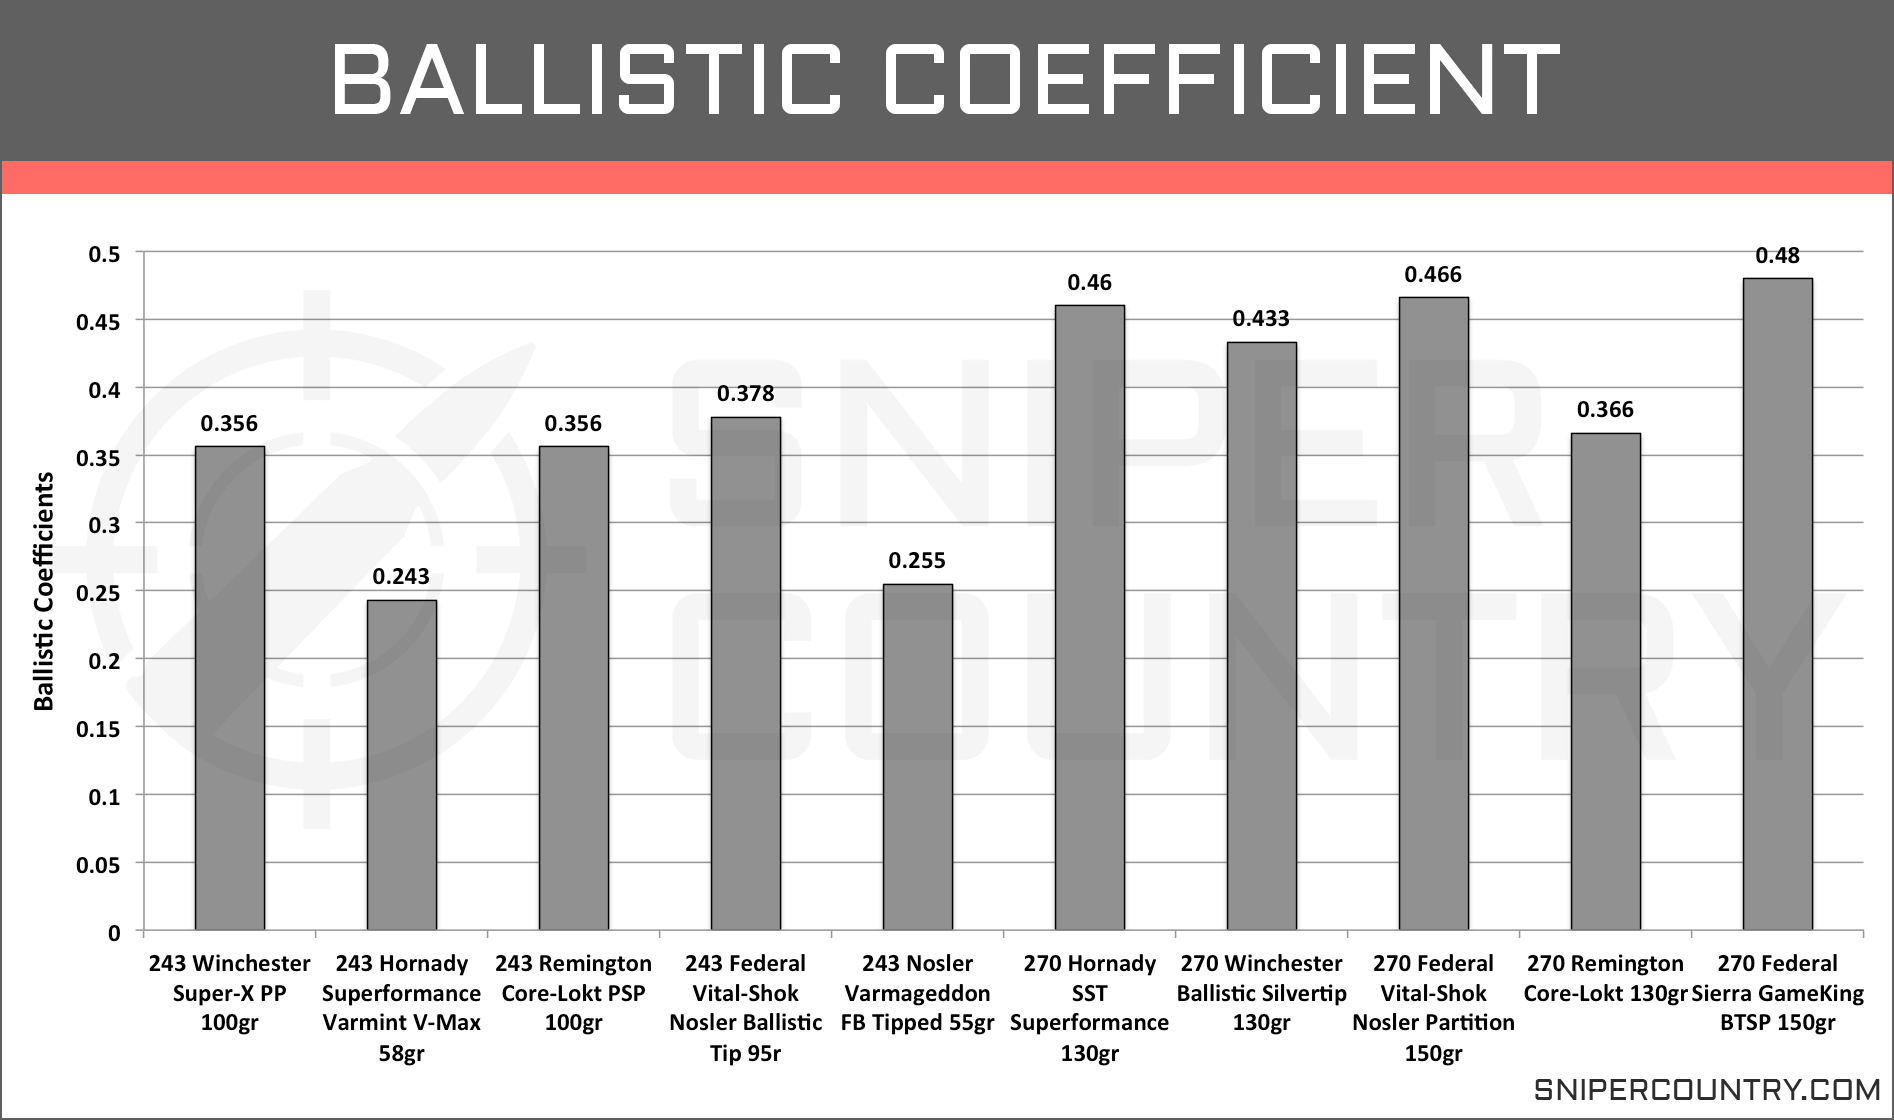 Ballistic Coefficient 243 Win vs 270 Win